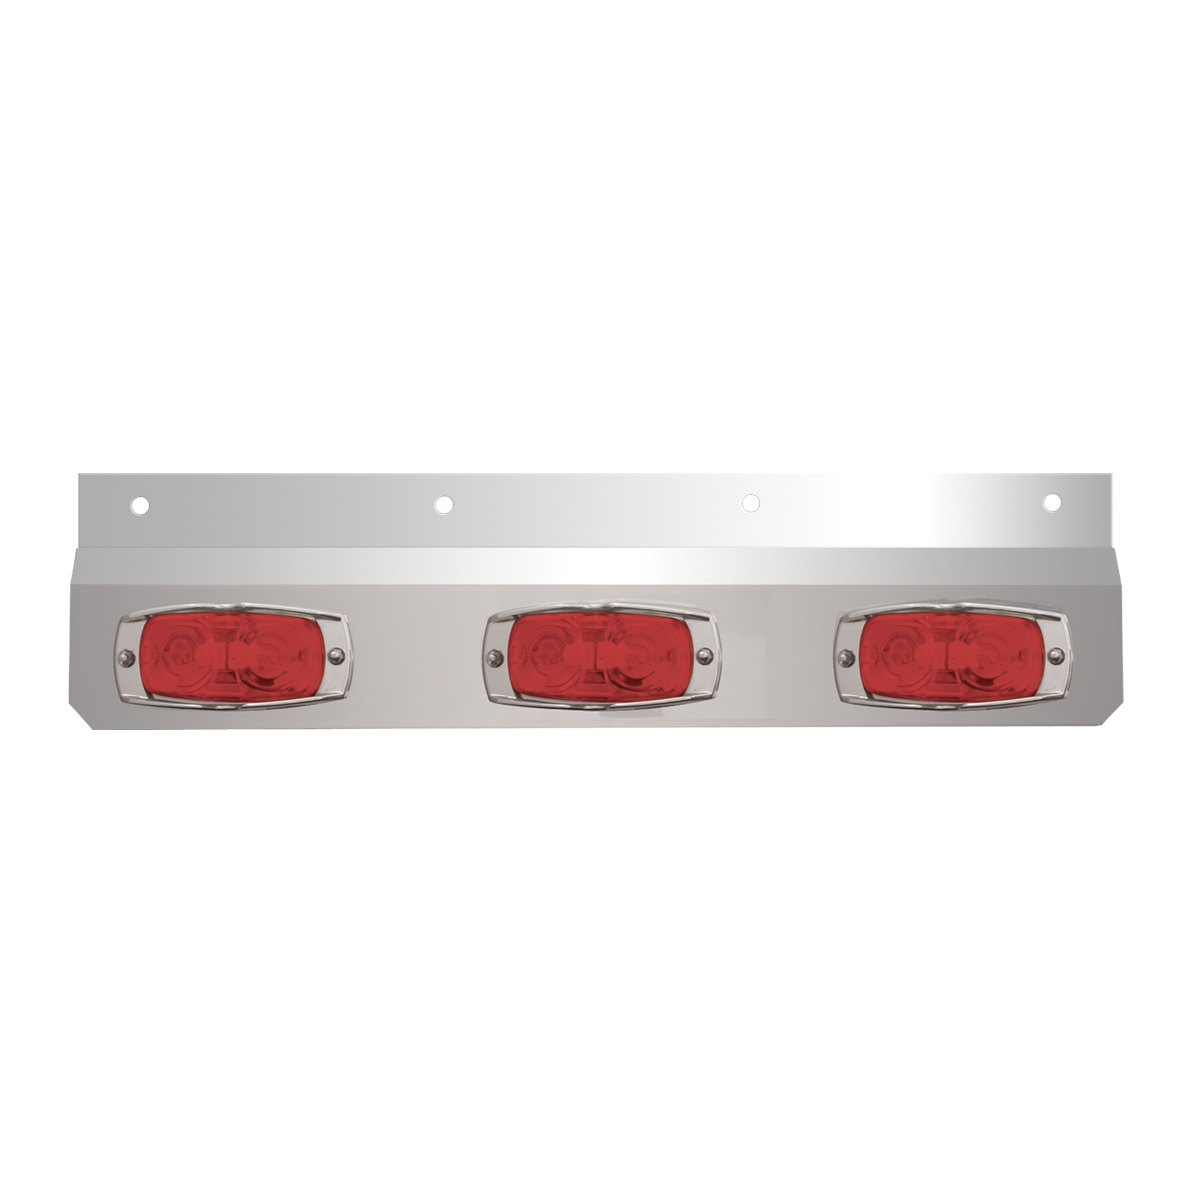 #30645 Stainless Steel Lighted Top Plate with Cat-Eye Lights - Red